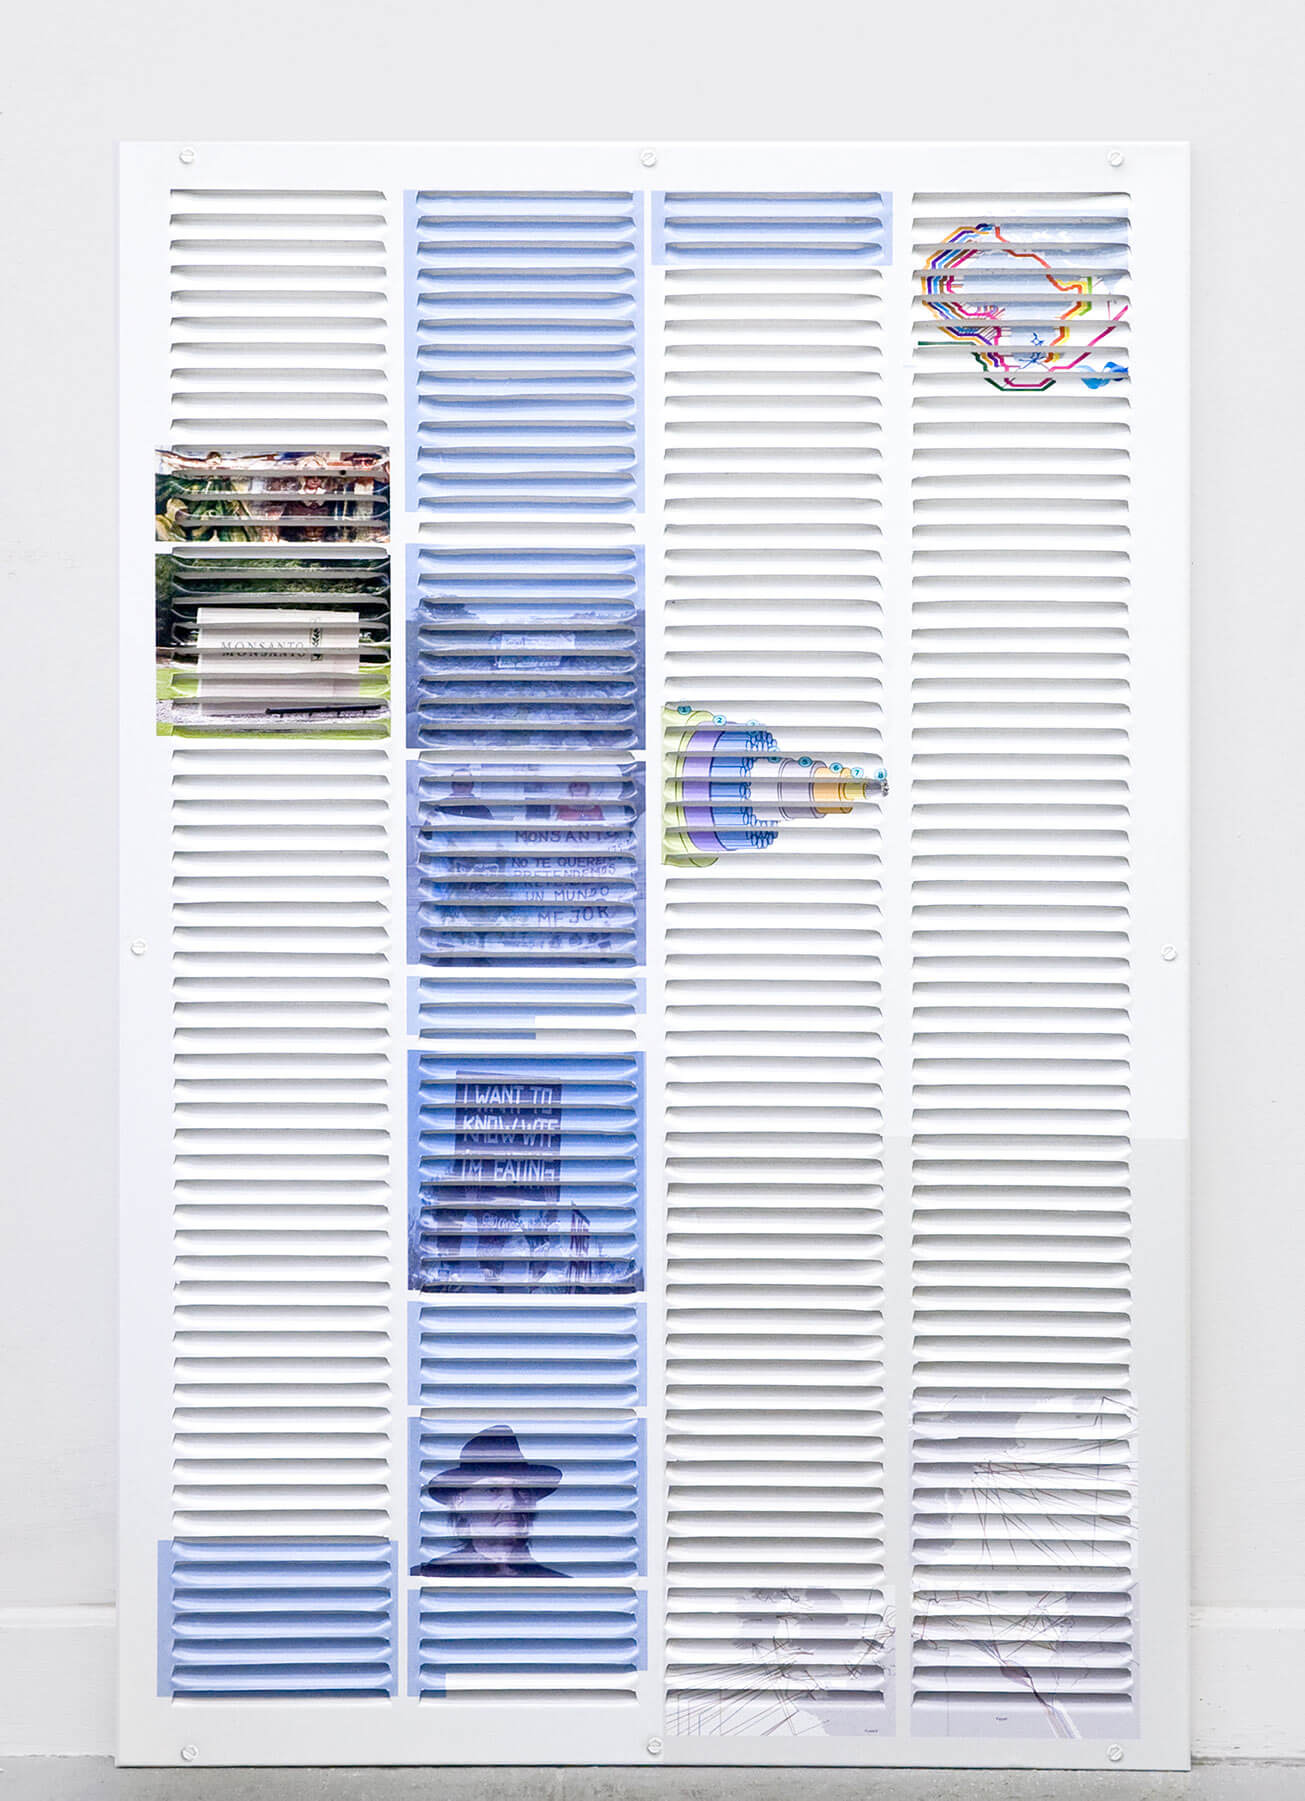 Michael Assiff                                         'Vent (The Monsanto Years, Sofia Gatica, Submarine Cables)', 2014                                         32.75 x 22.75 Inches                                         ink, vinyl, steel